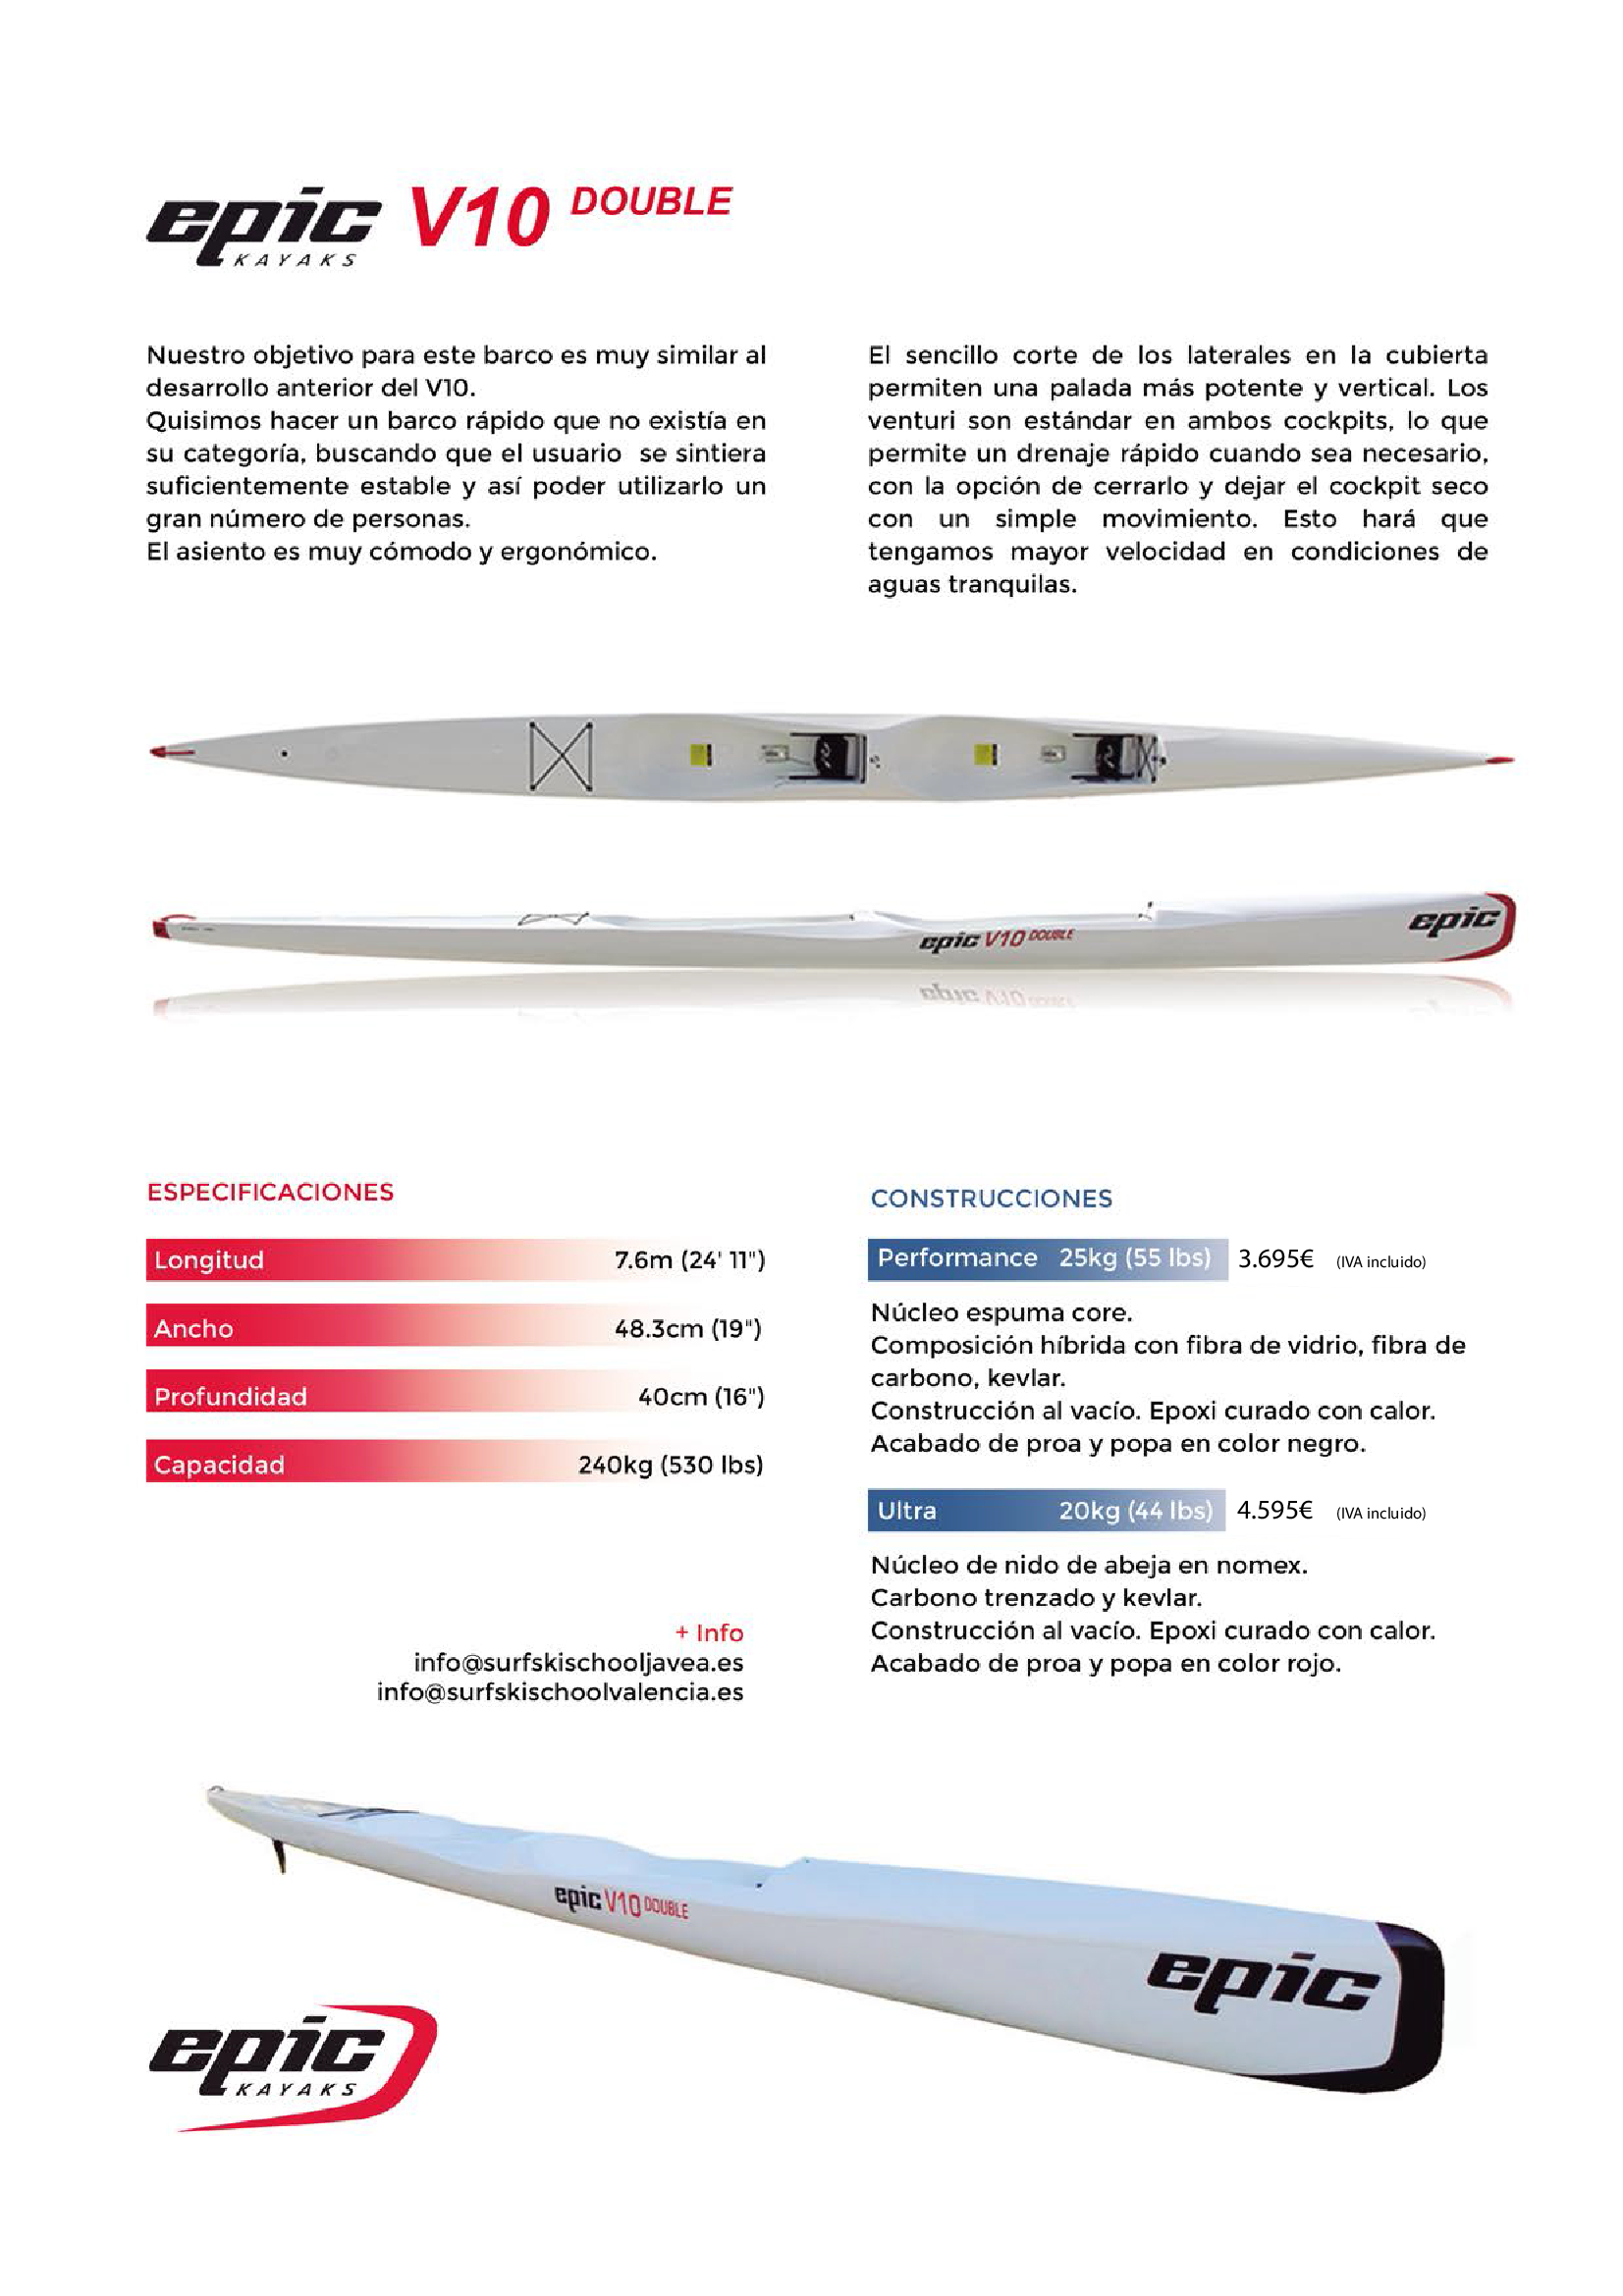 surfski v10L double